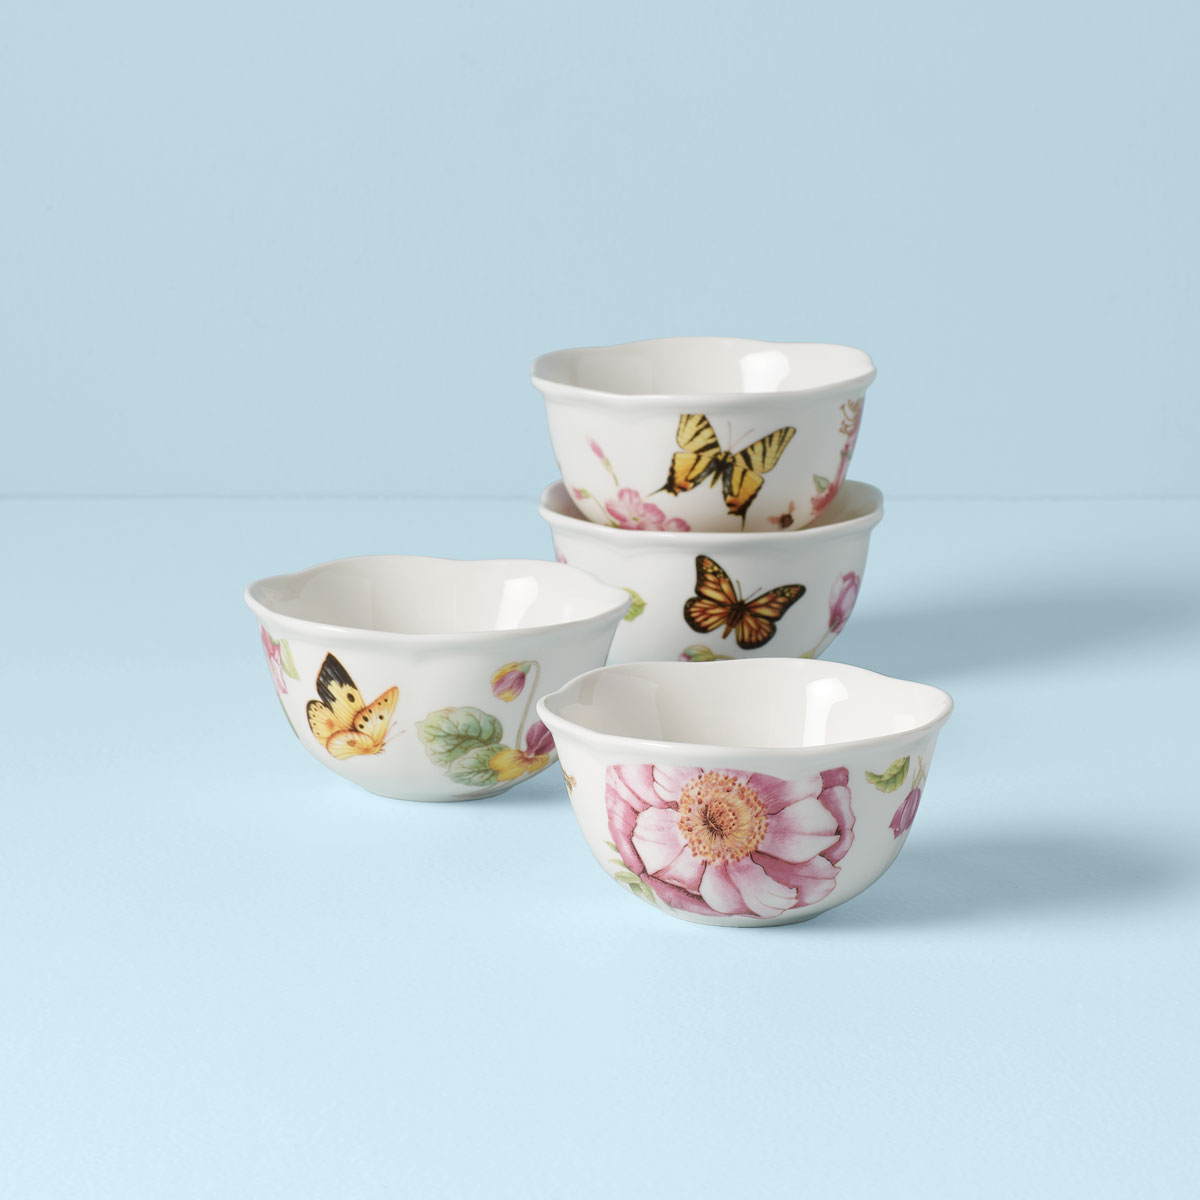 Lenox Butterfly Meadow Bloom Dinnerware Dessert Bowl Set Of 4